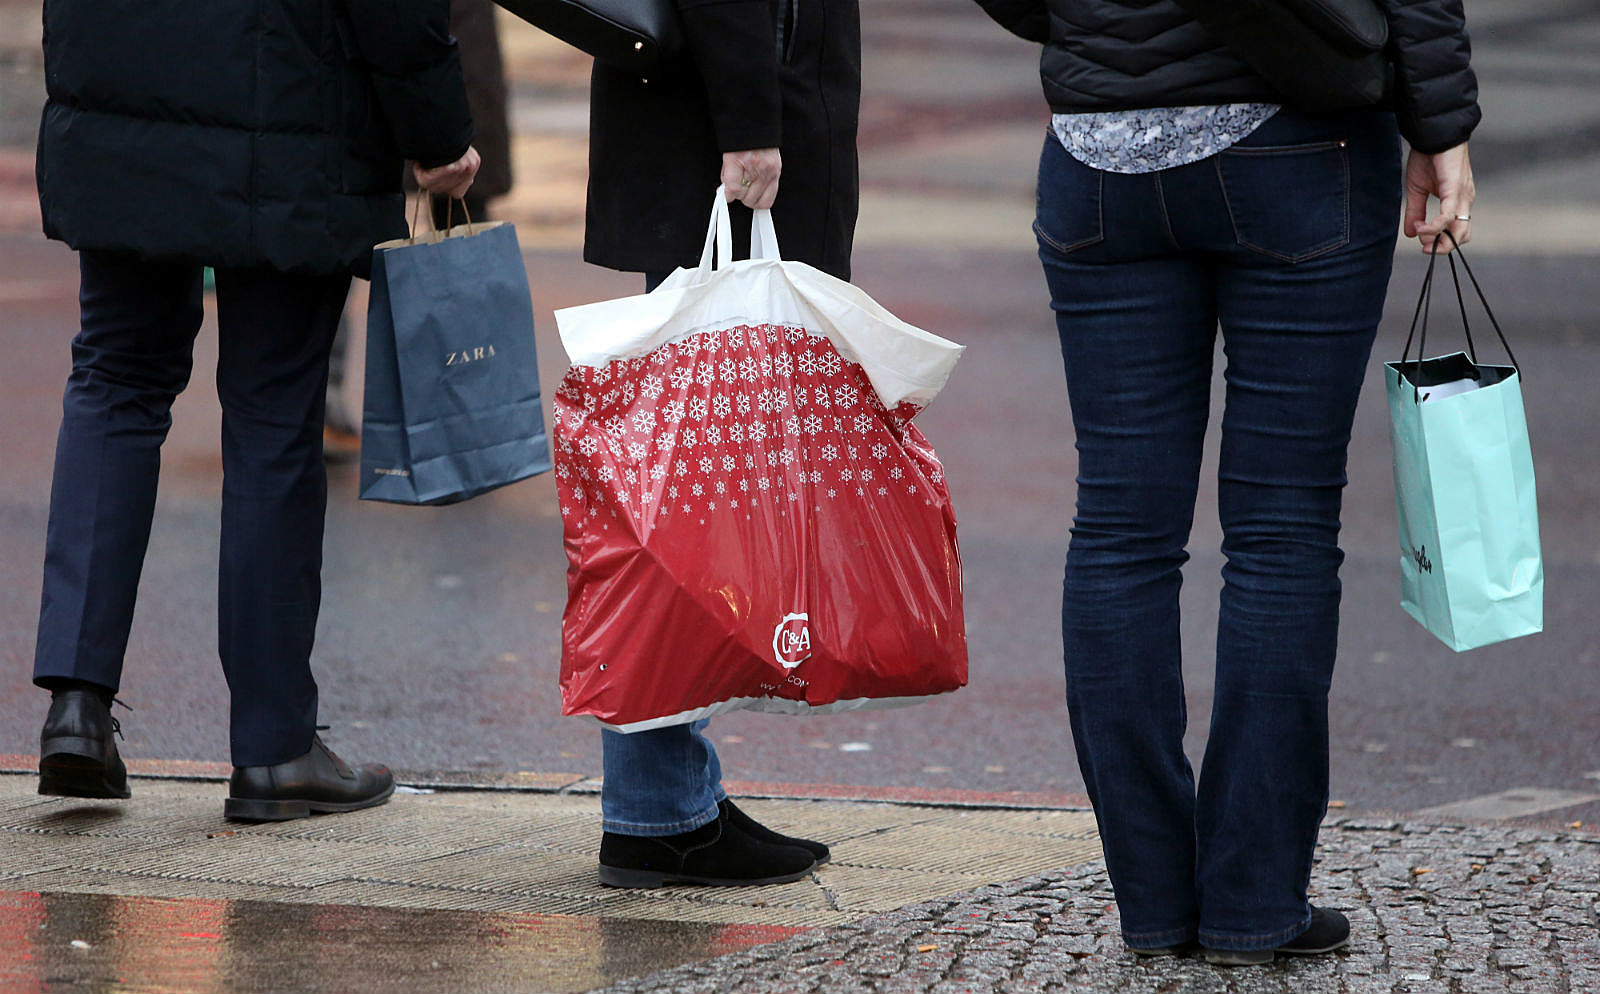 Shoppers_ Adam Berry/Getty